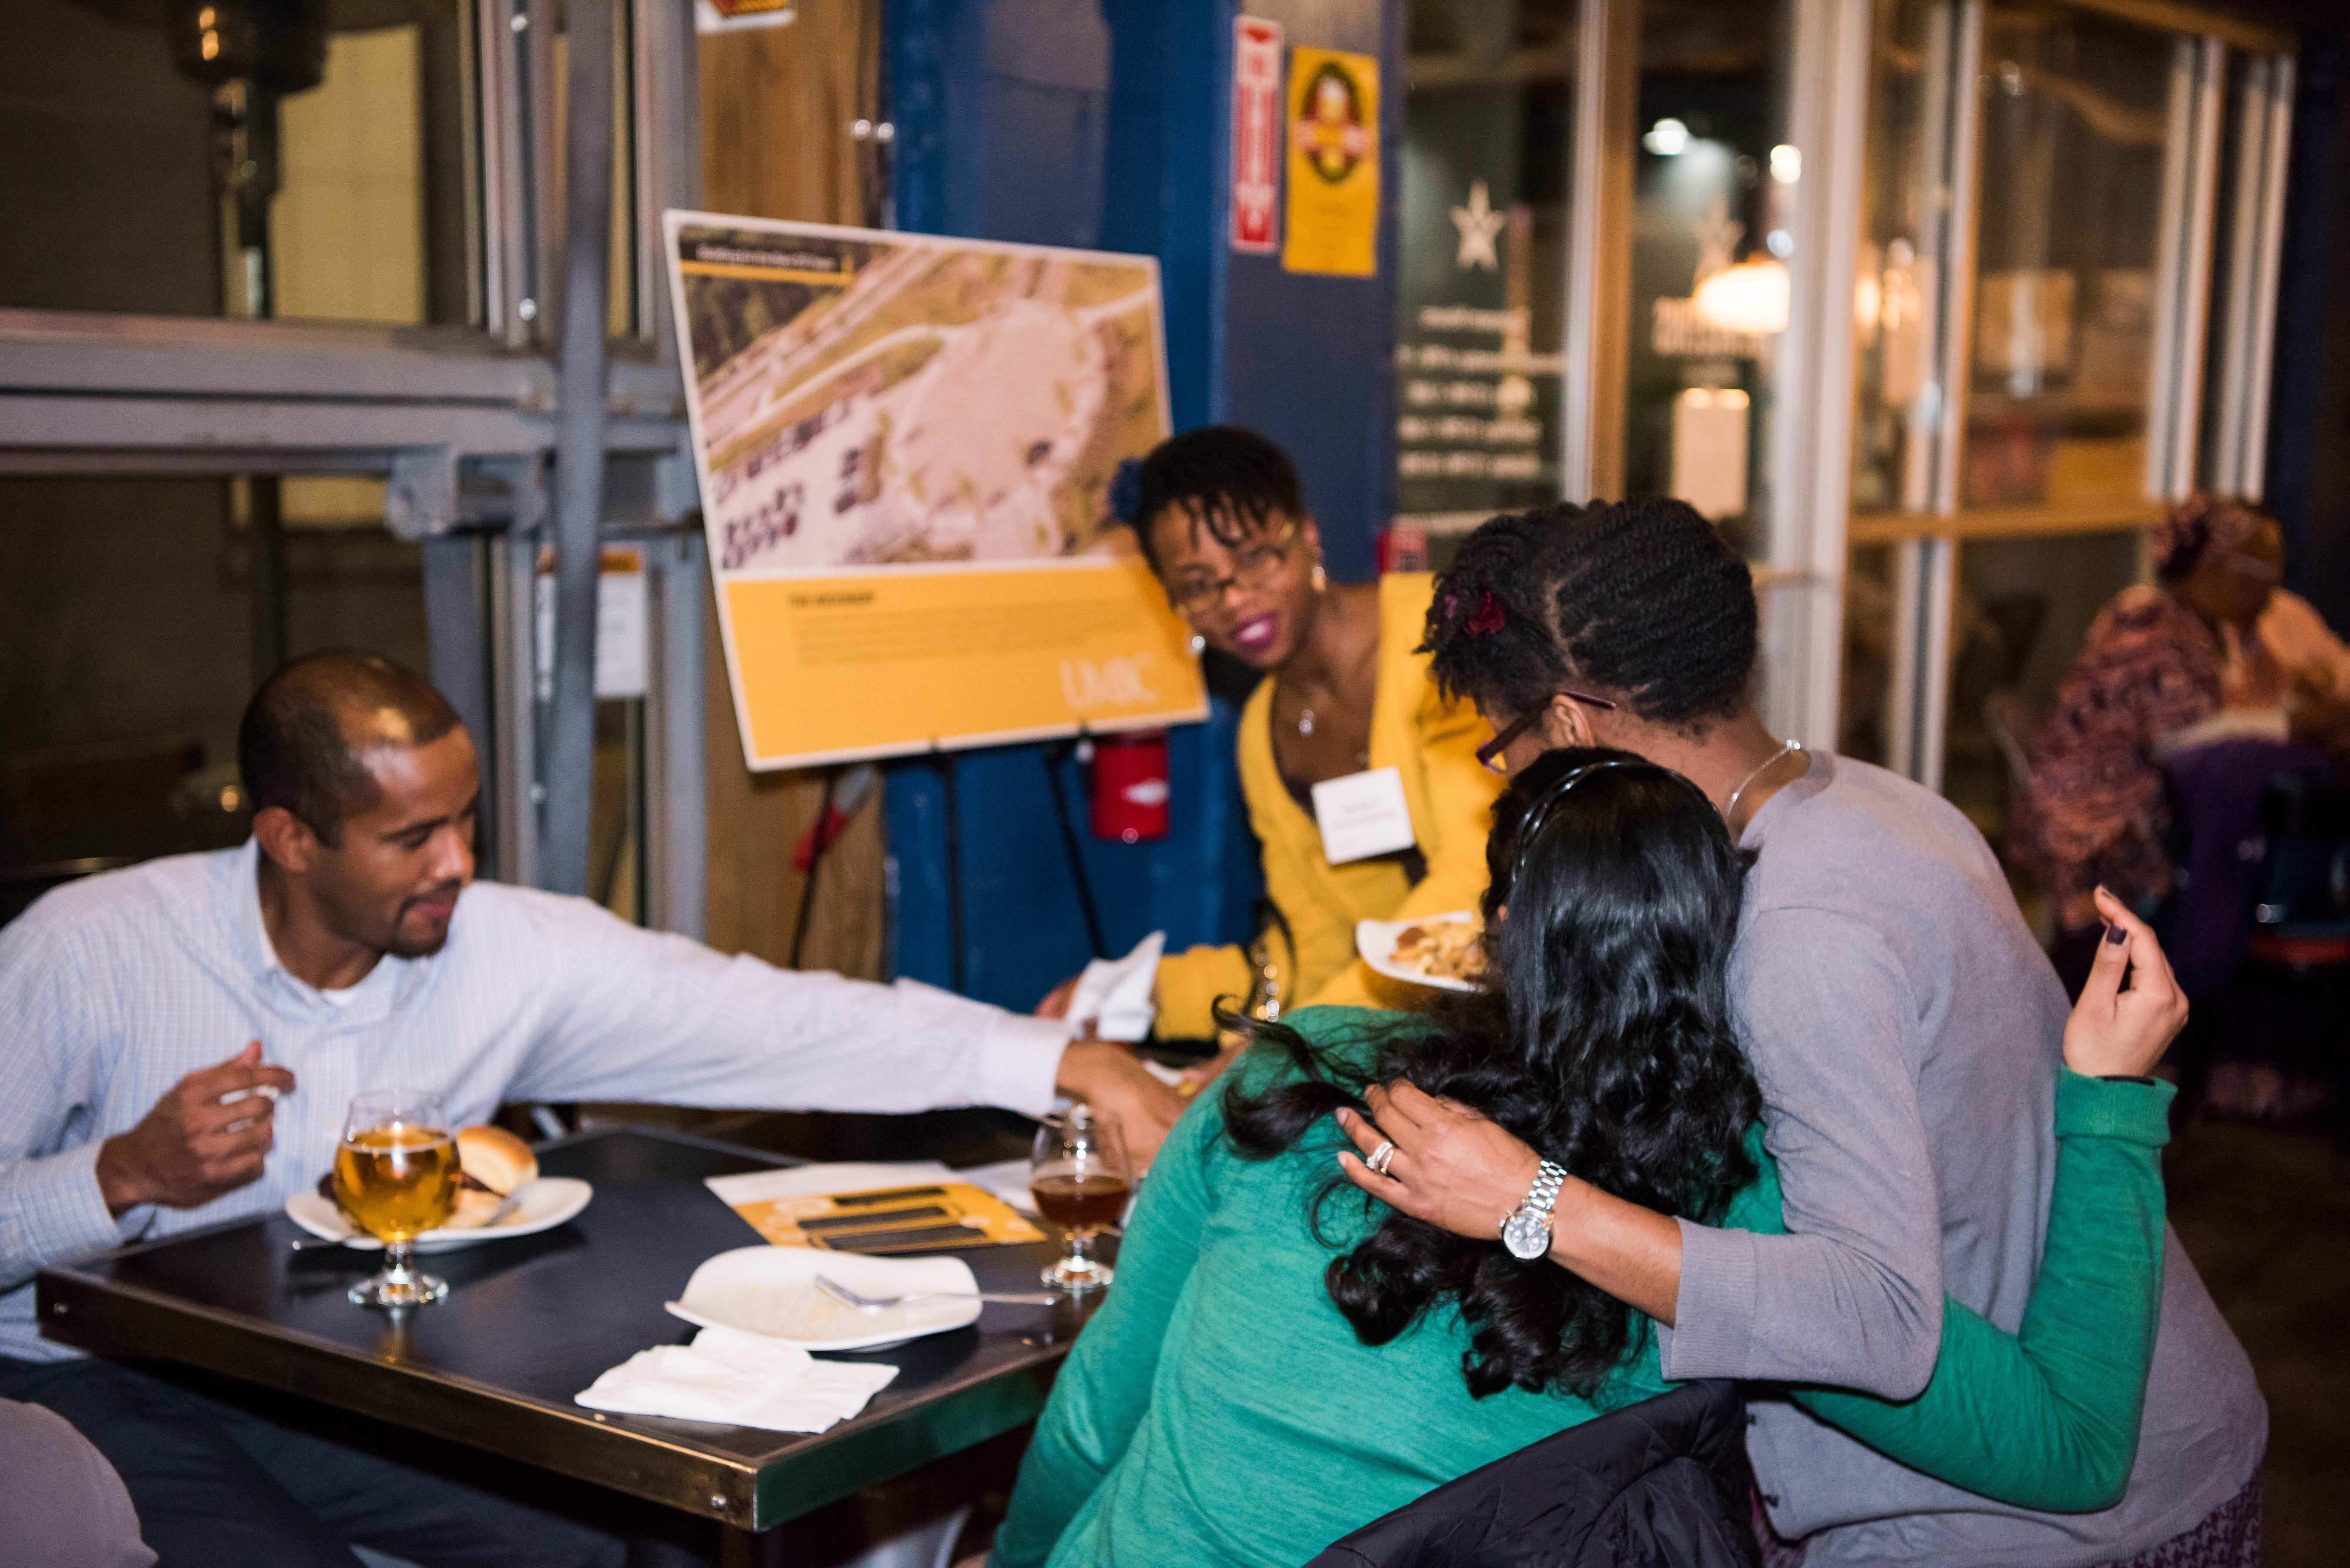 Women embracing as they talk to people at table at chocolate city bar talk